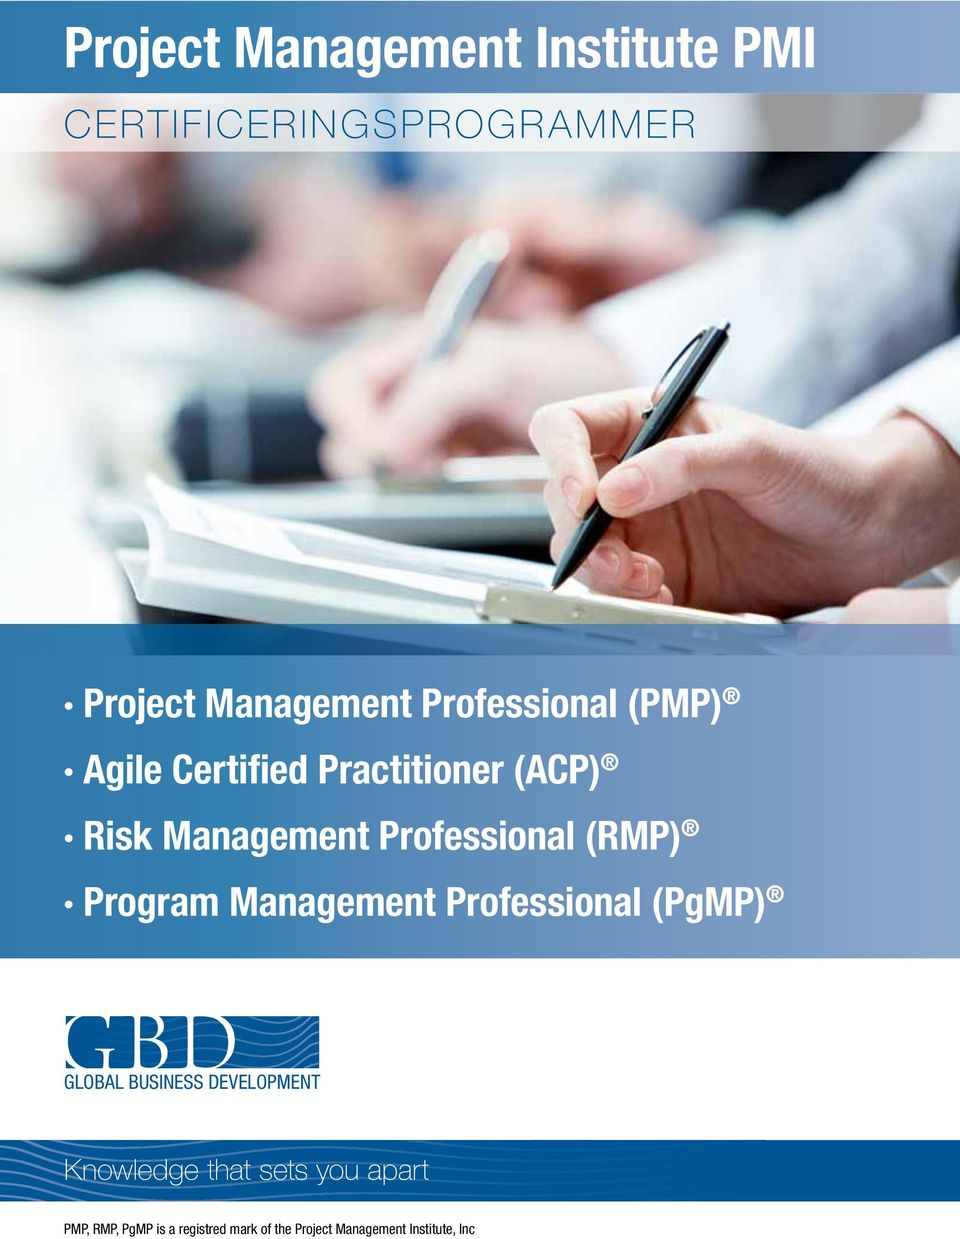 Professional (RMP) Program Professional (PgMP) GLOBAL BUSINESS